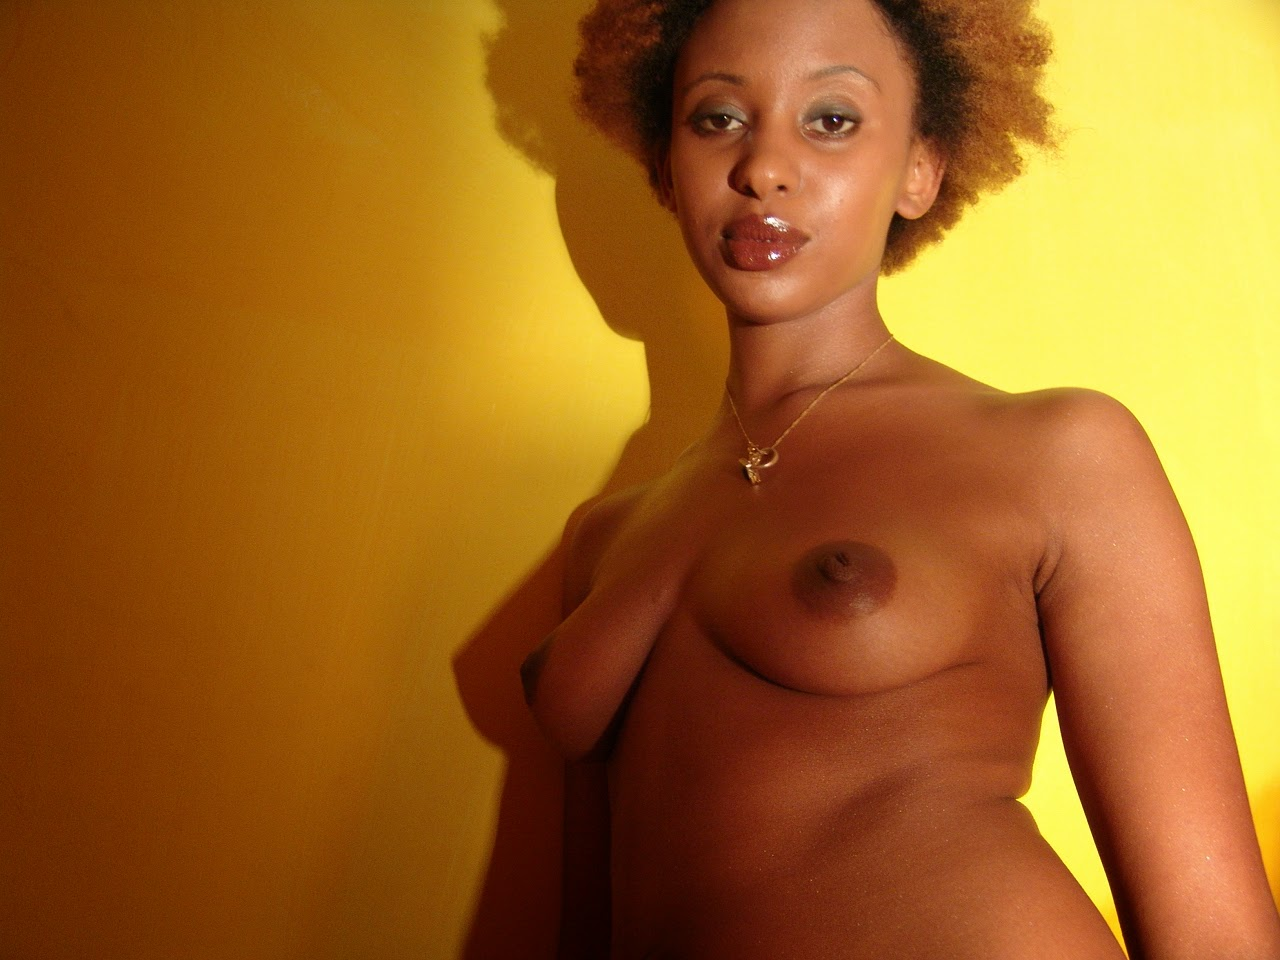 Advise Uganda singer leaked nude opinion you